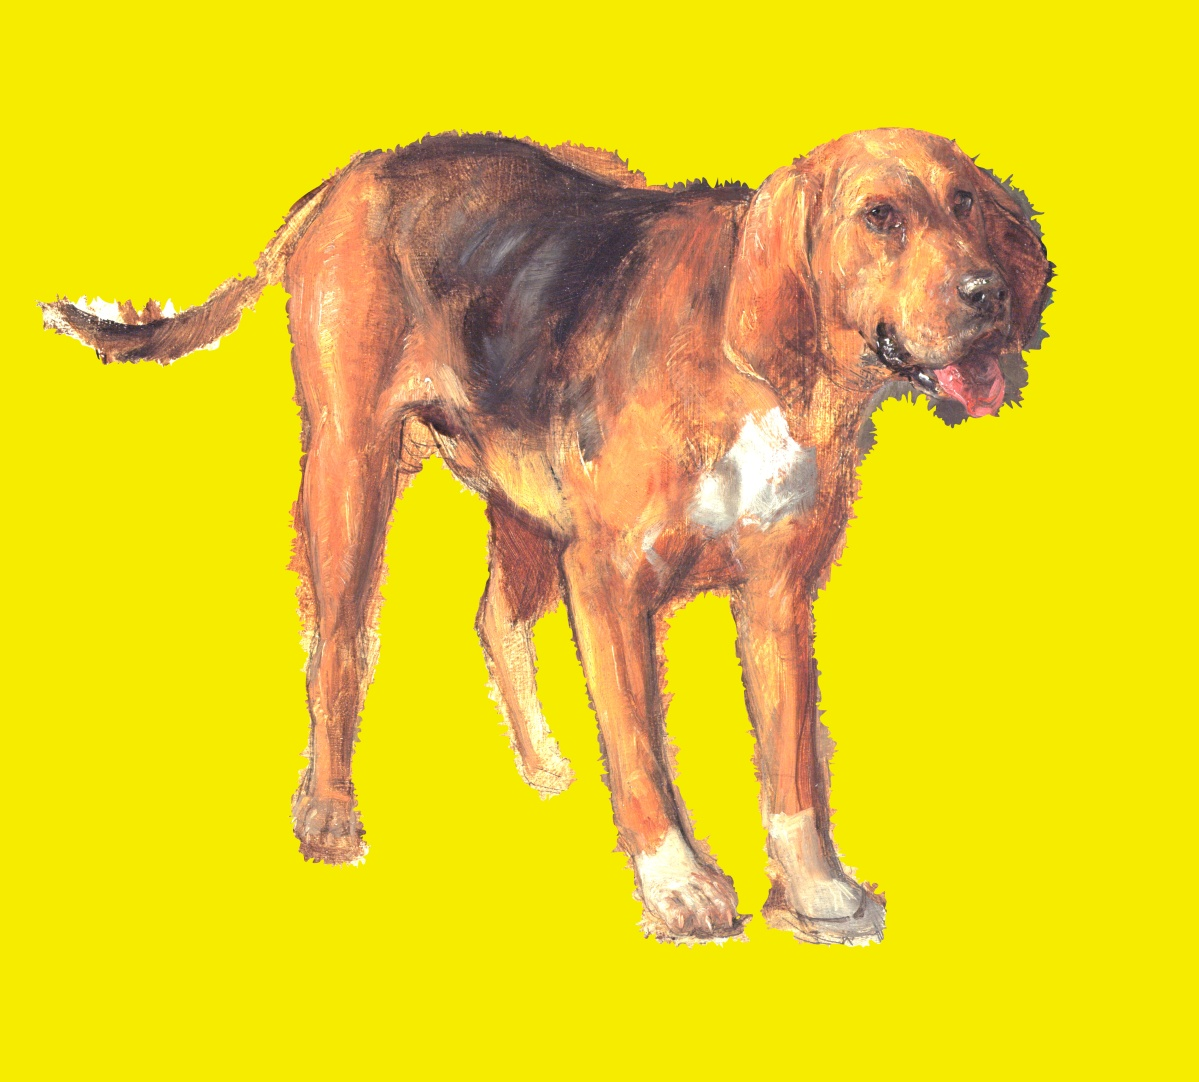 dog gone yellow